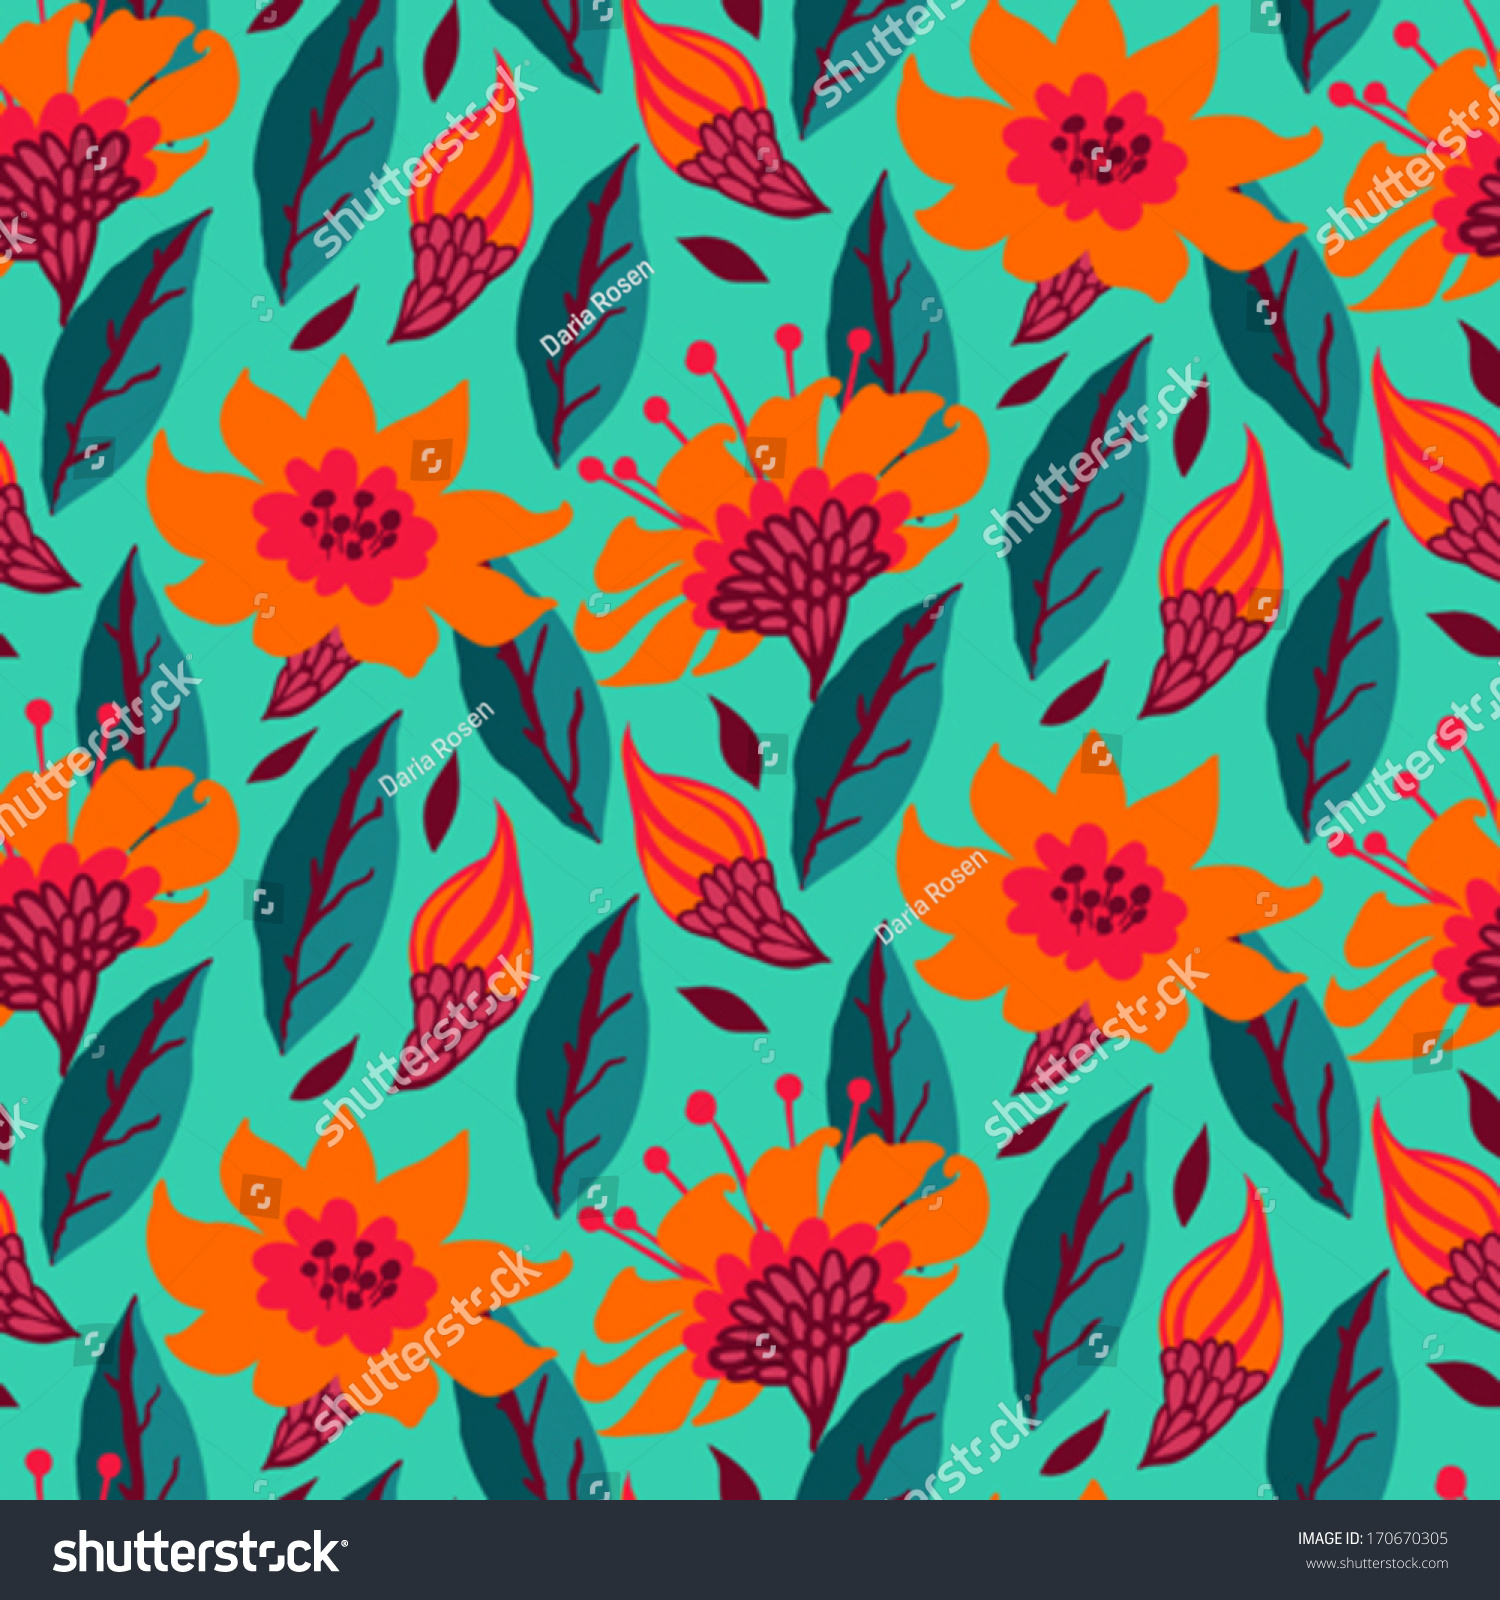 Vector Seamless Floral Pattern With Daisy Flowers On